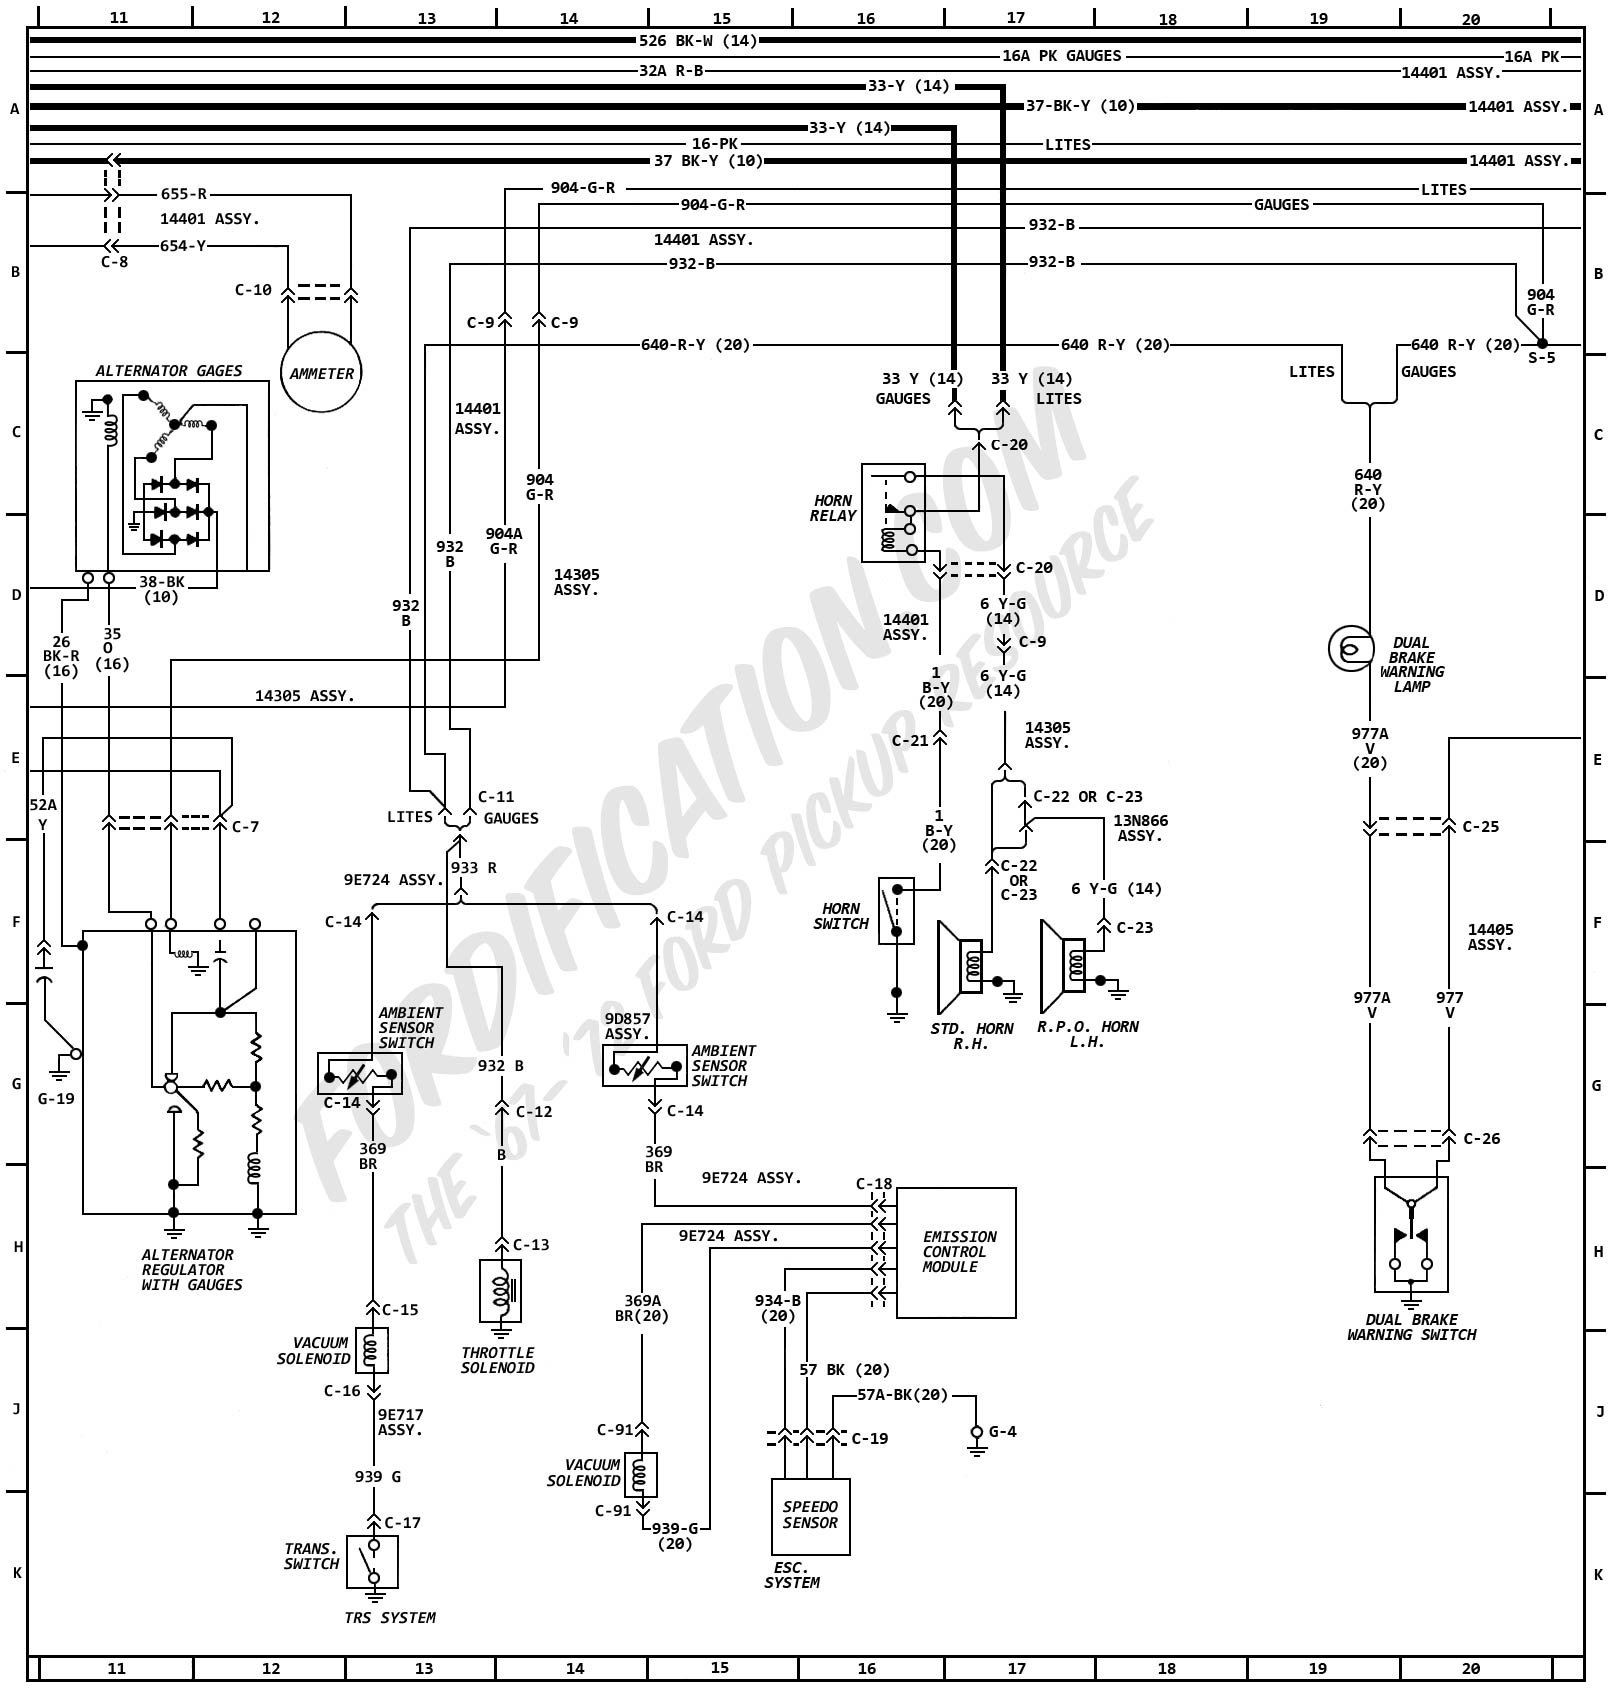 f100 wiring diagram canine skull 1972 ford truck diagrams fordification